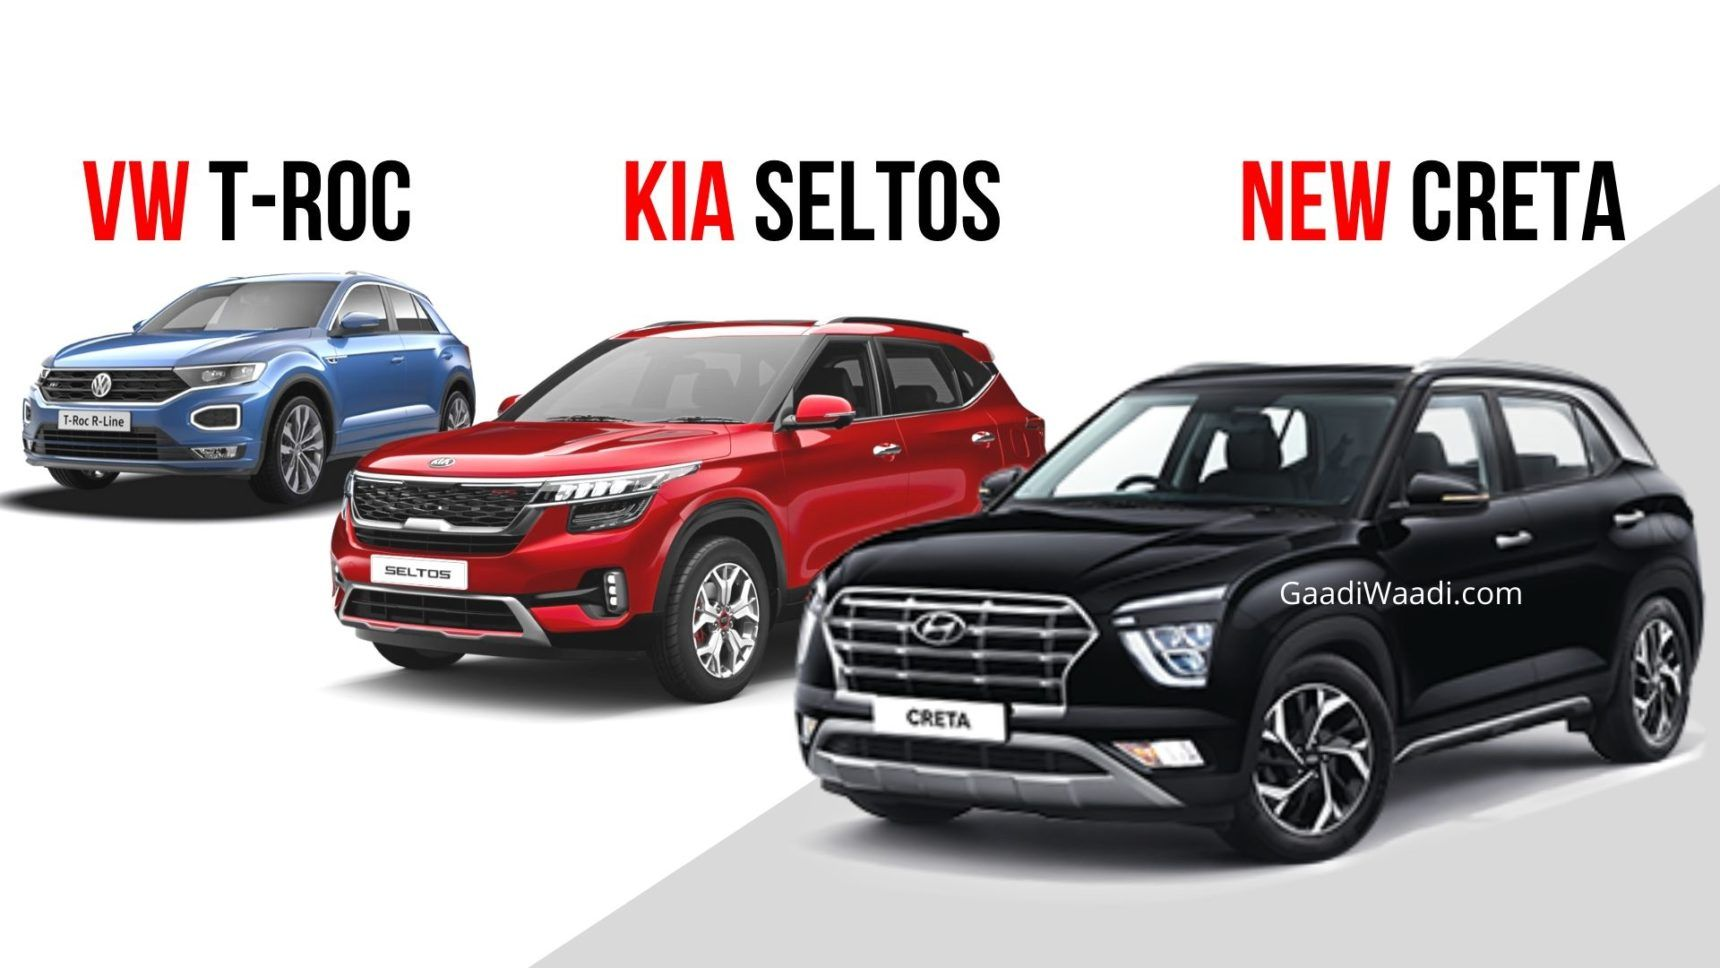 Vw T Roc Vs Kia Seltos 1 4 Vs Hyundai Creta 1 4 Turbo Spec Comparison In 2020 Kia Hyundai Turbo